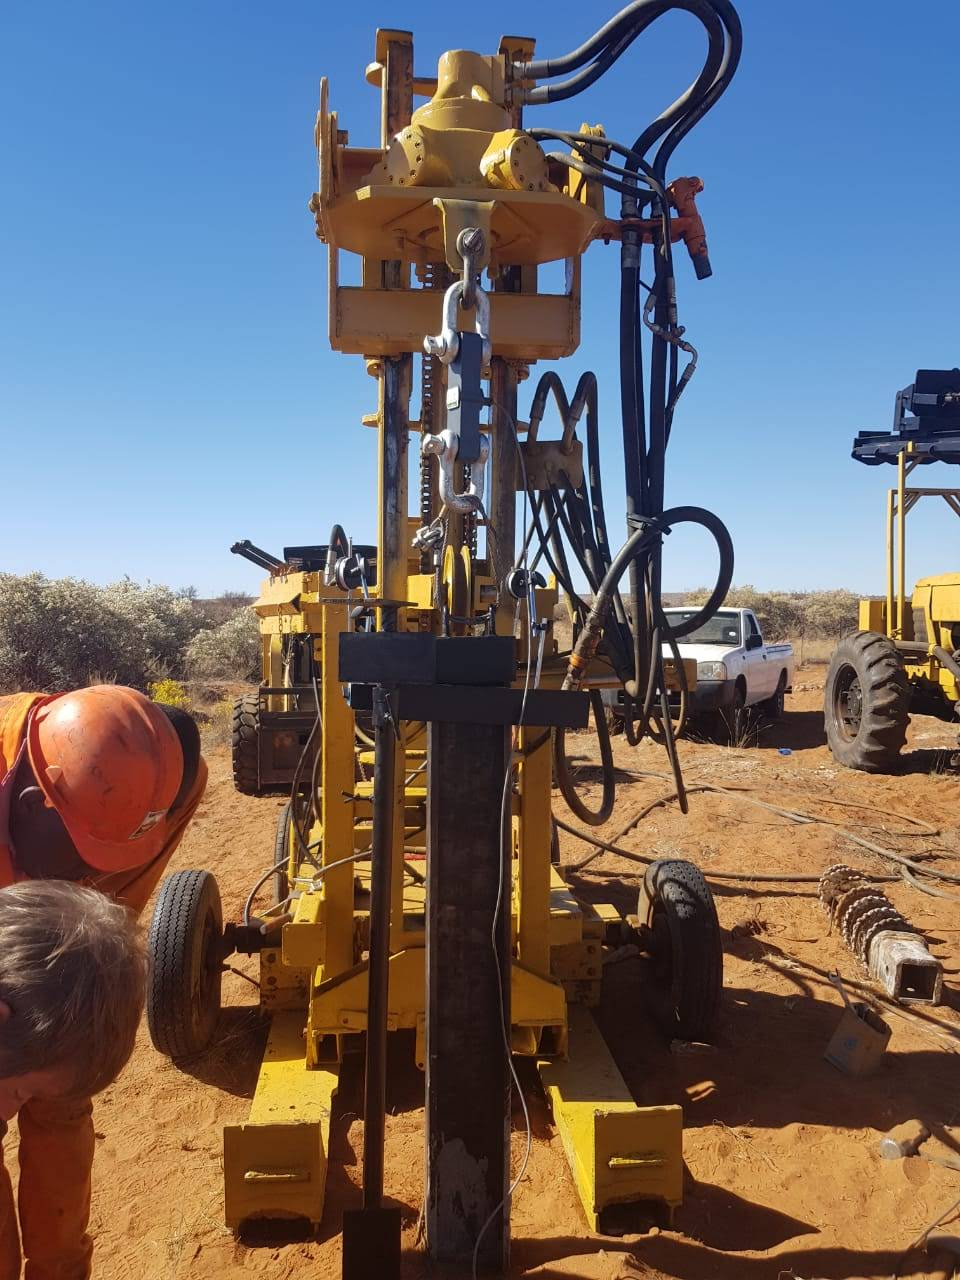 Rig-for-working-in-confined-spaces-IMG-20180823-WA0018